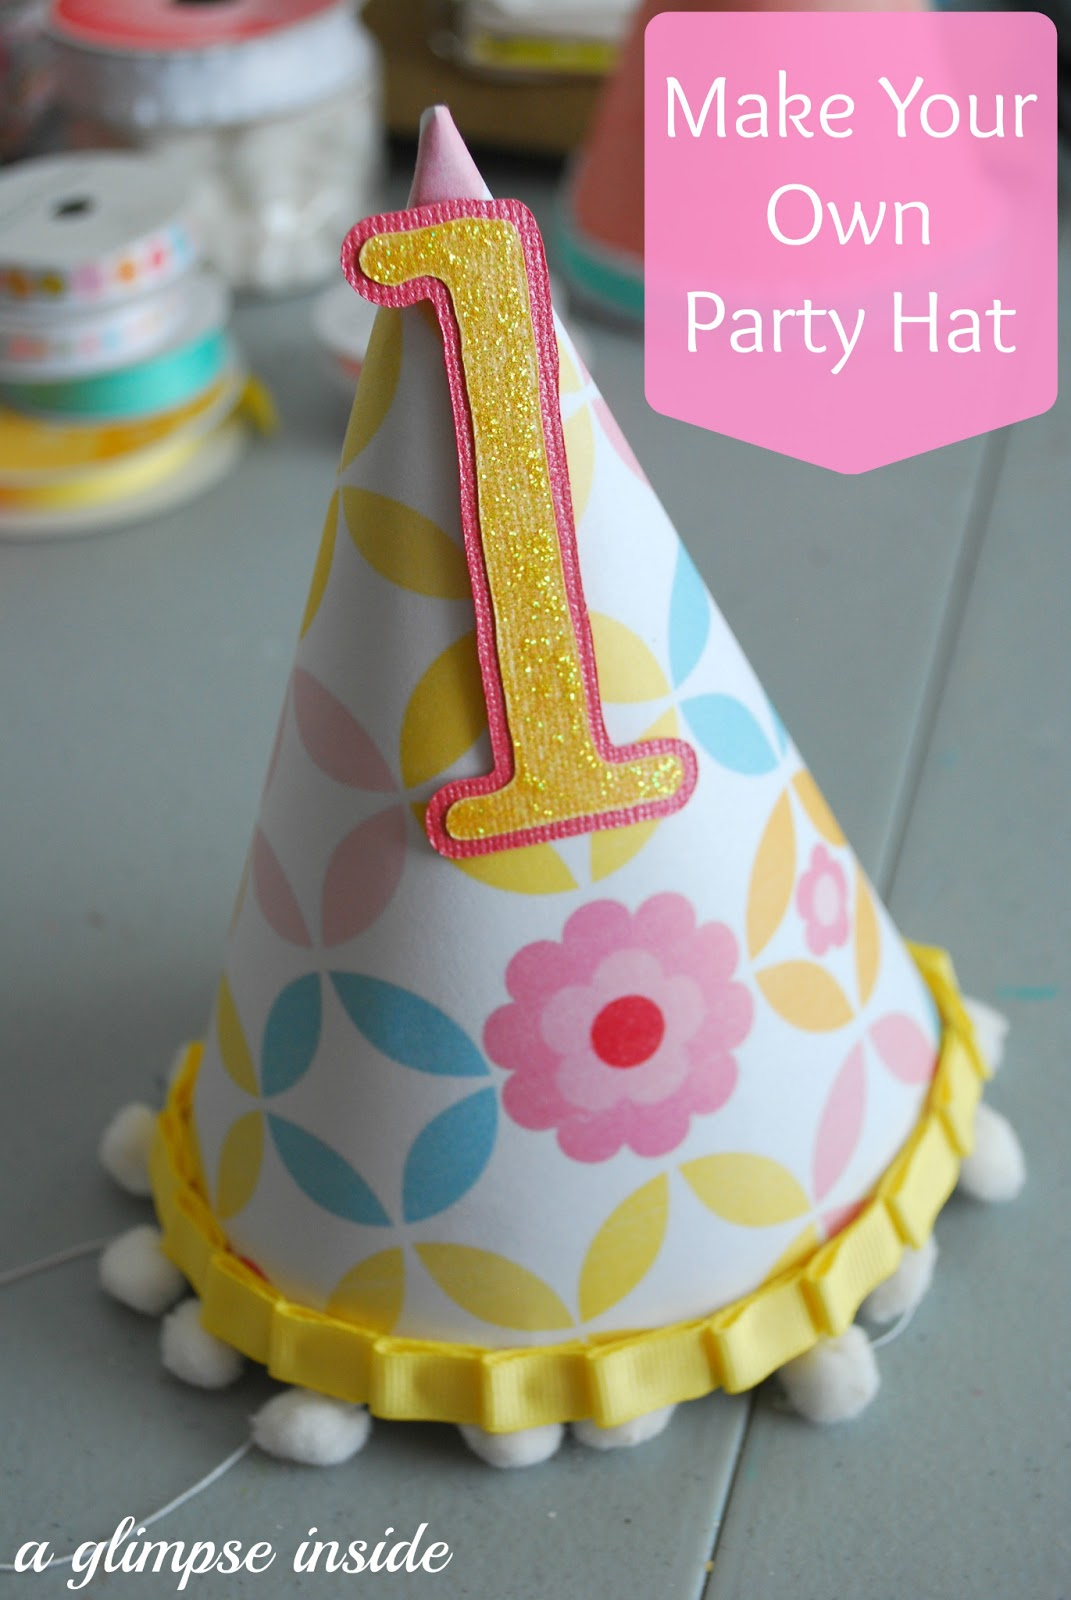 Create Your Own Party Hats